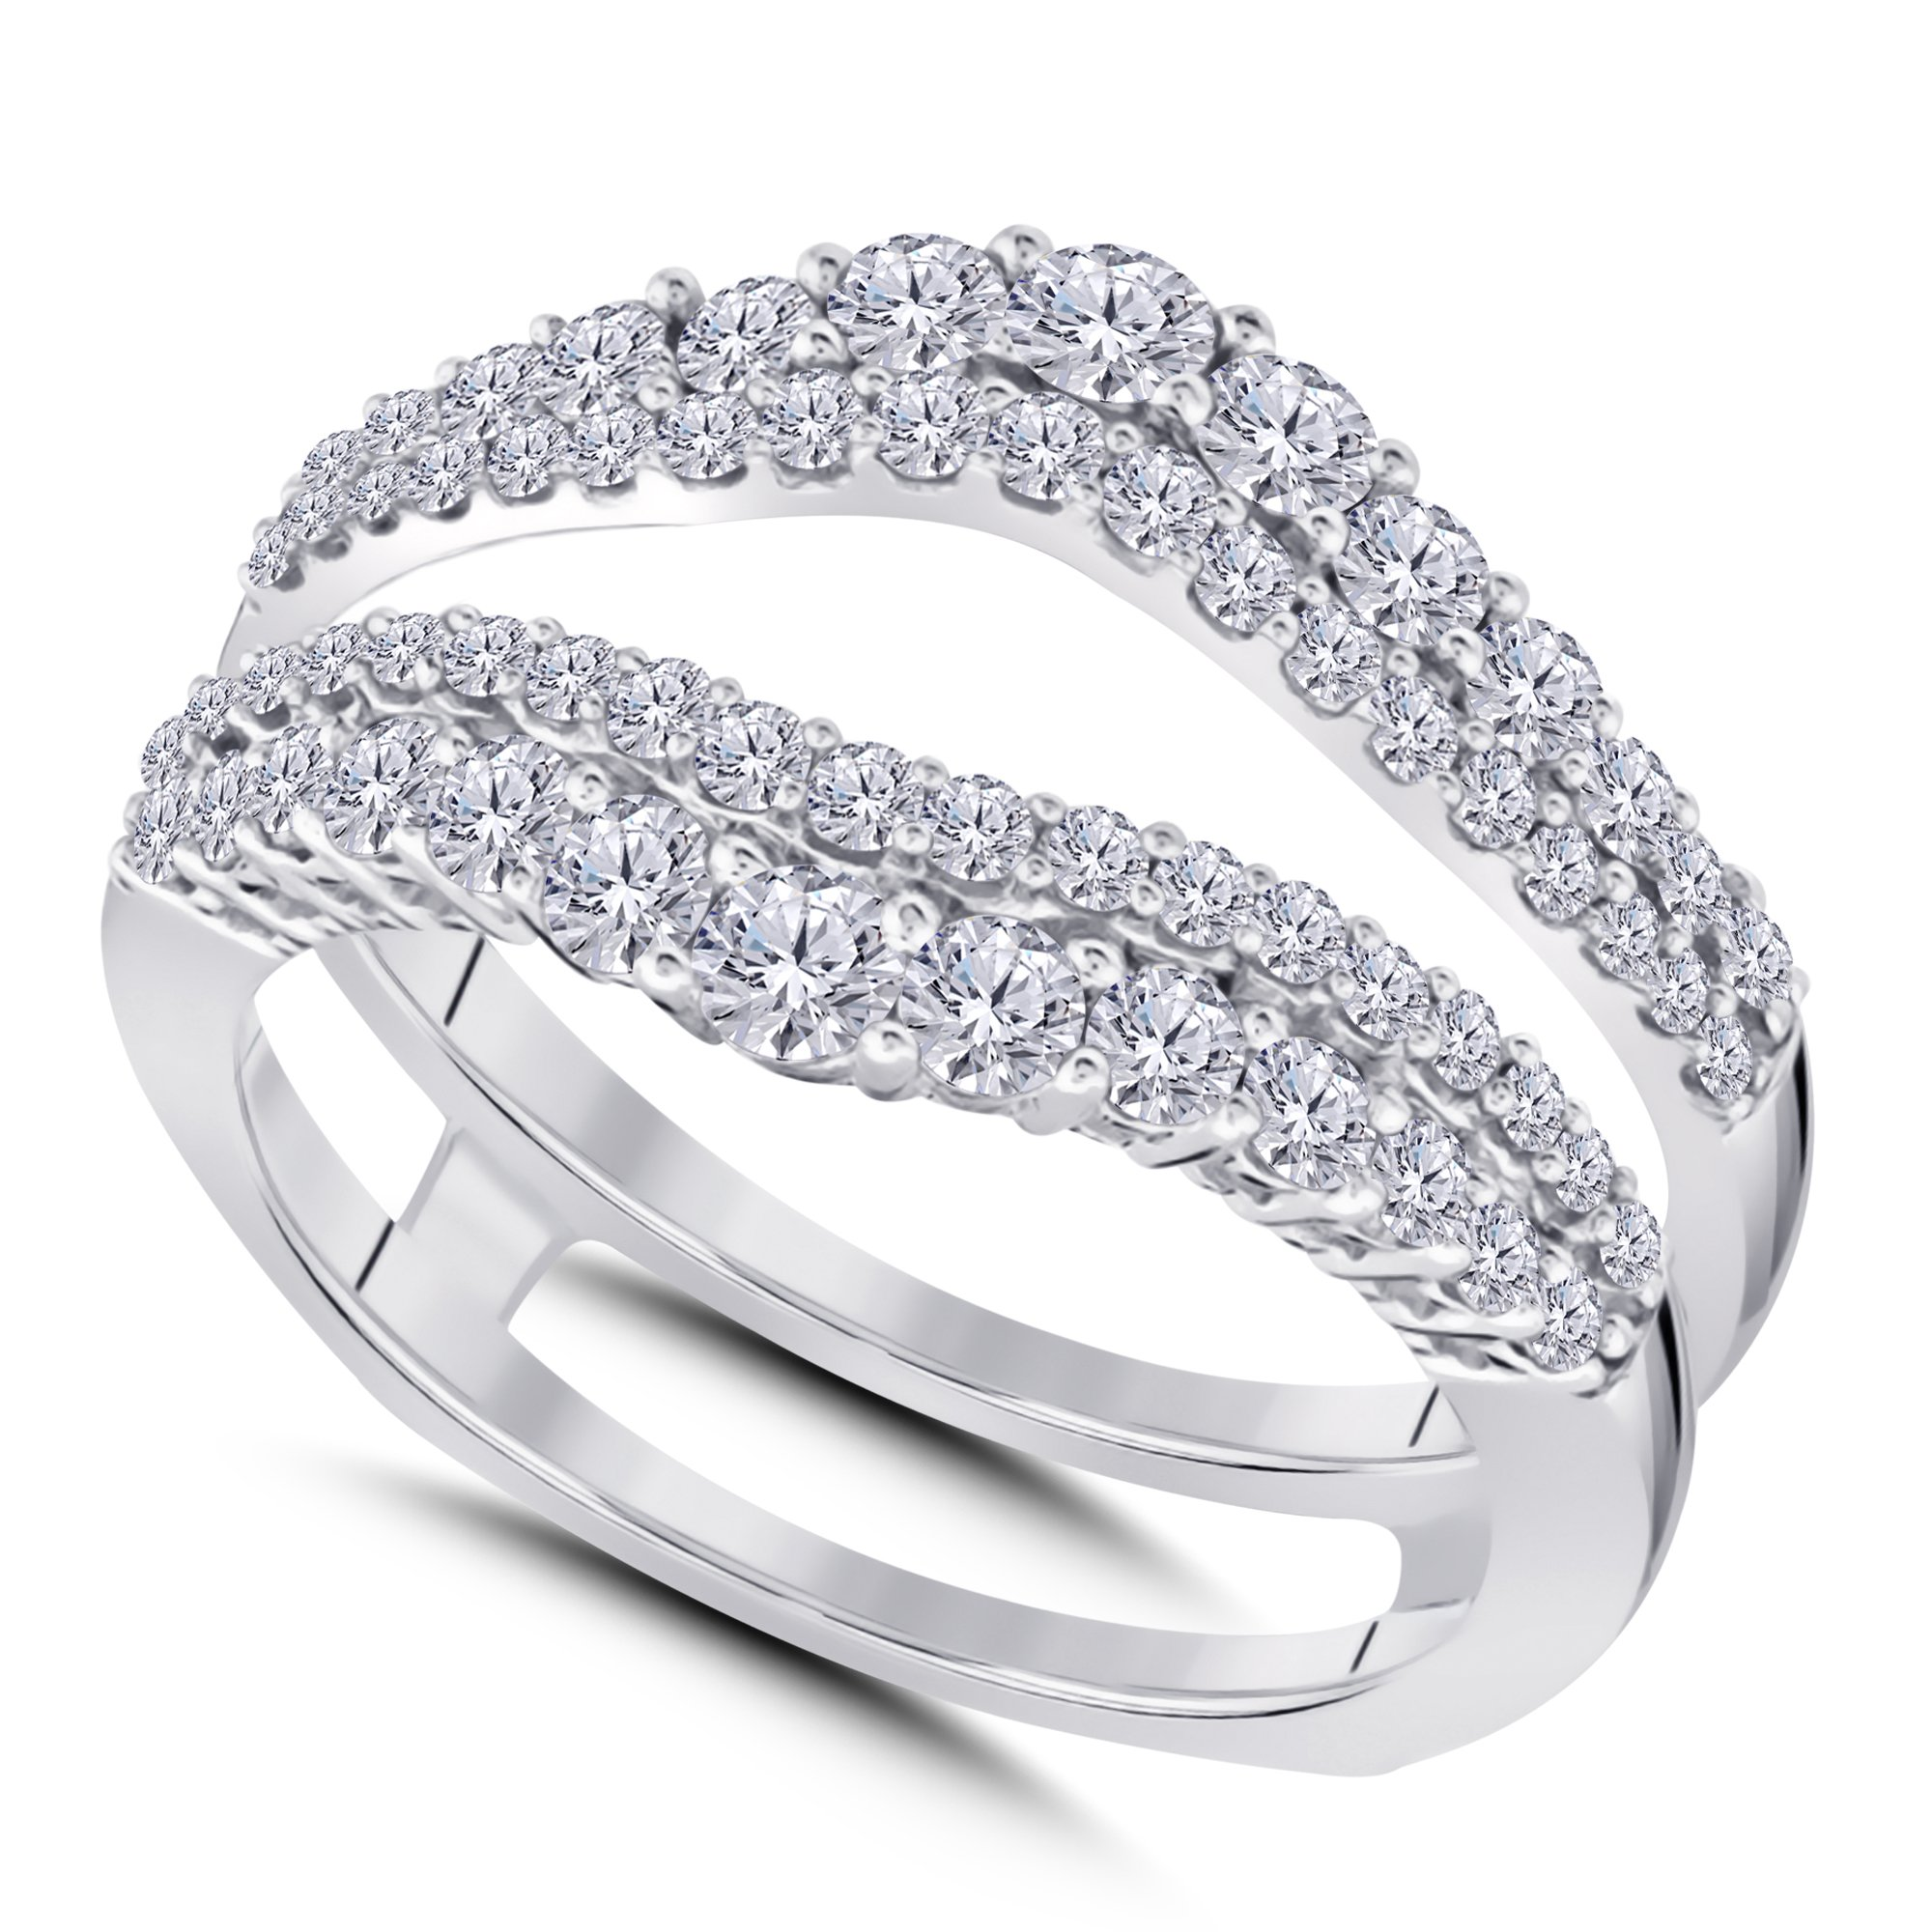 Silver Gems Factory 14k White Gold Plated Double Wedding Ring Guard Enhancer with Cubic Zirconia by Silver Gems Factory